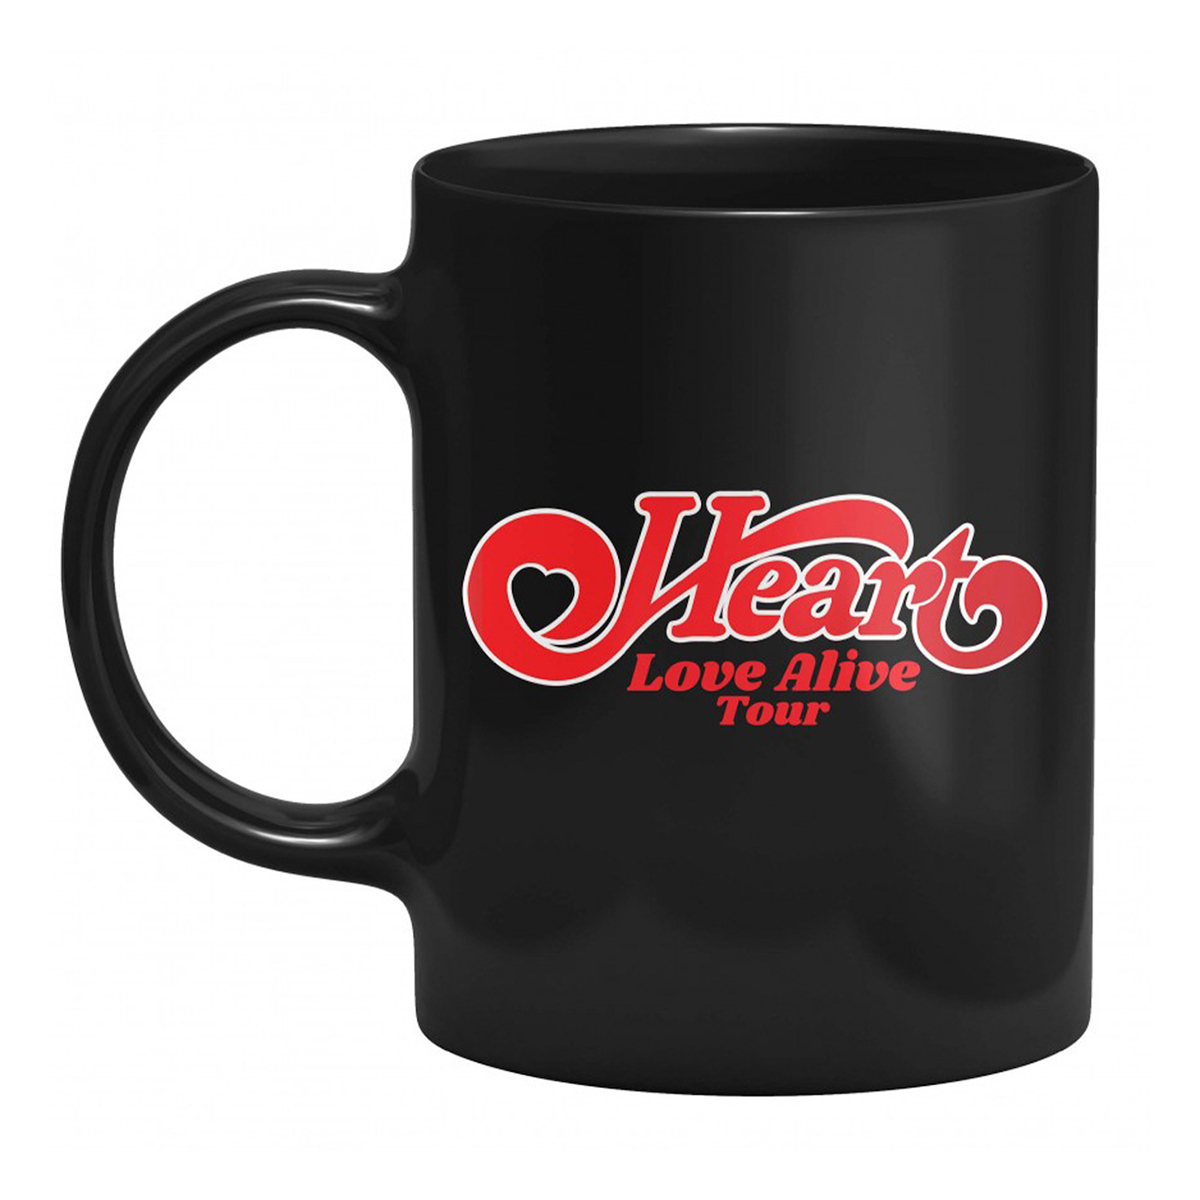 Love Alive Tour Mug